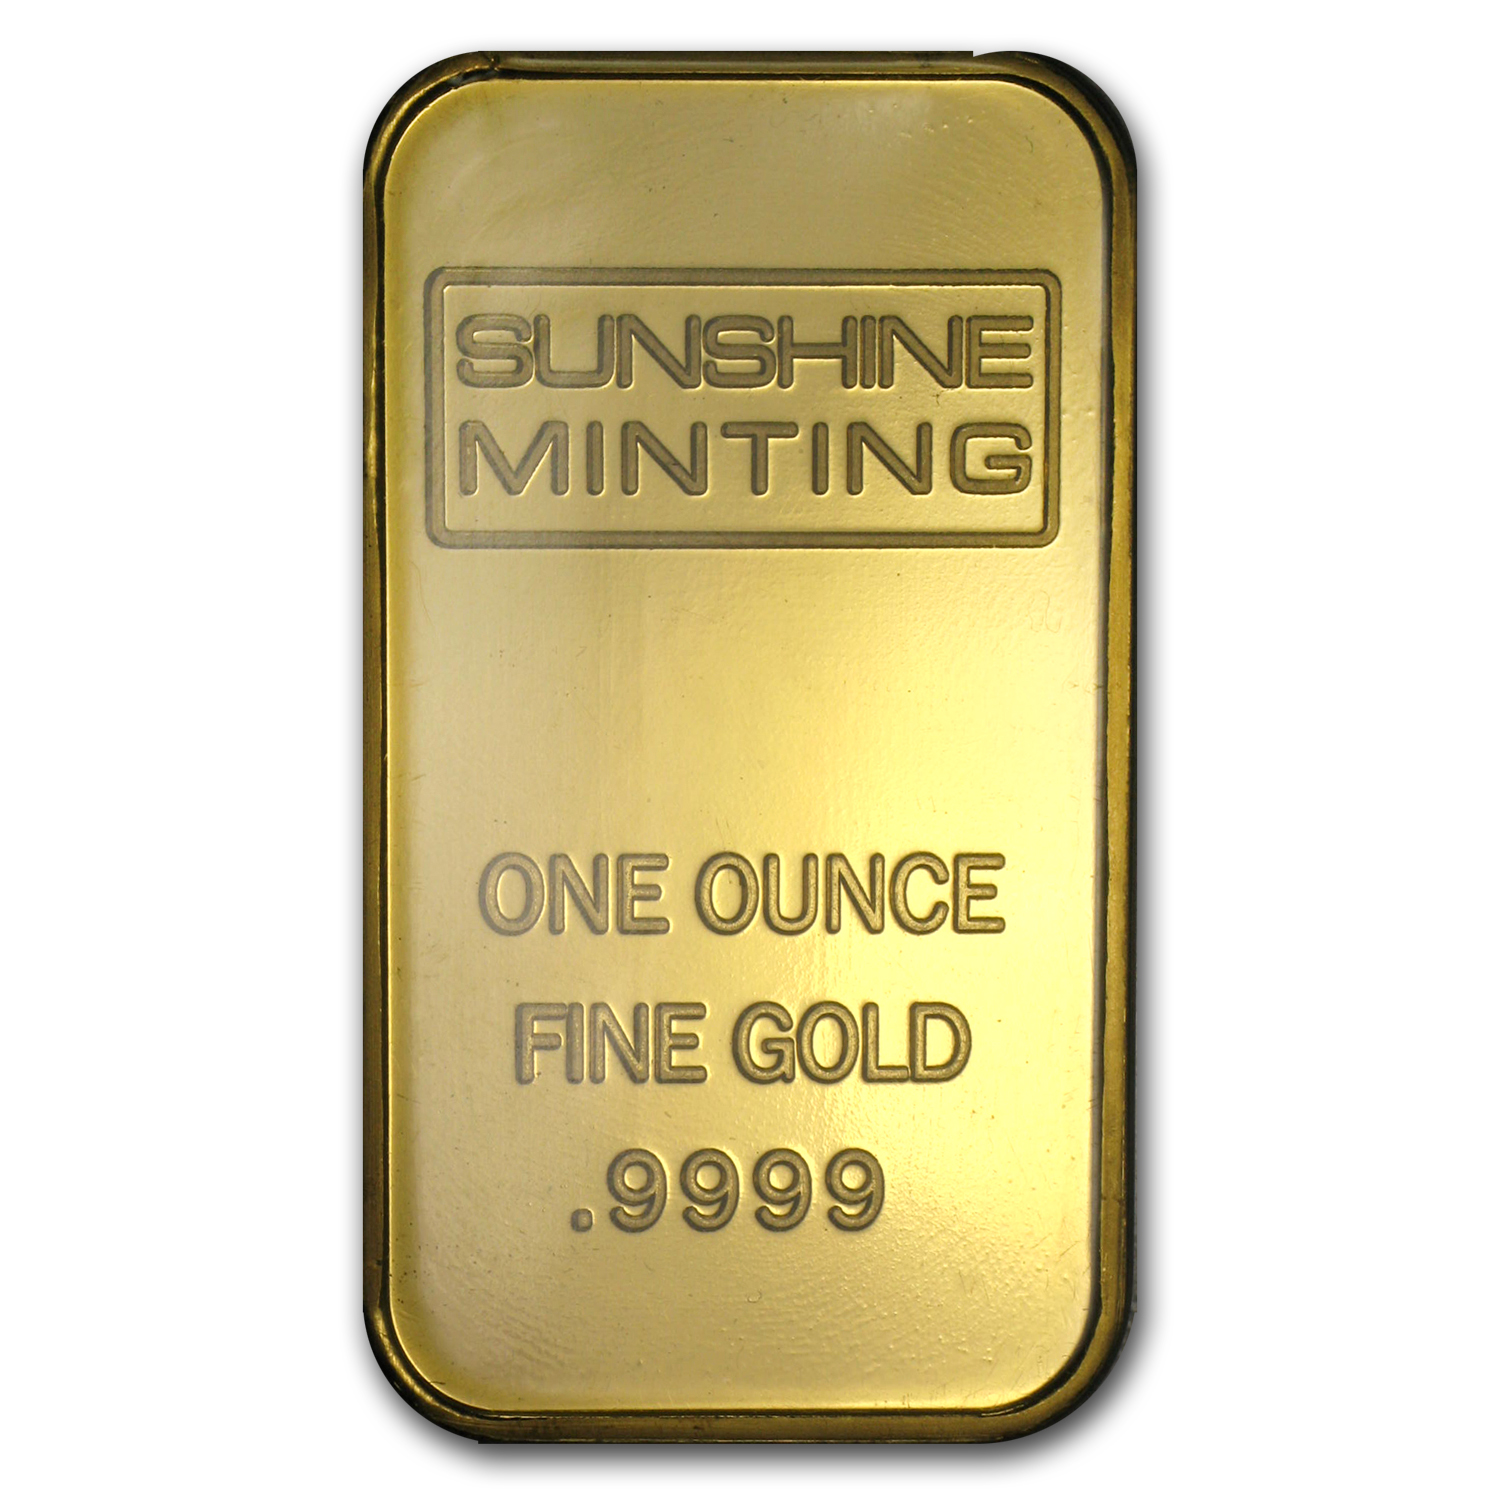 1 oz Gold Bar - Sunshine Minting Old Design (In TEP Packaging)